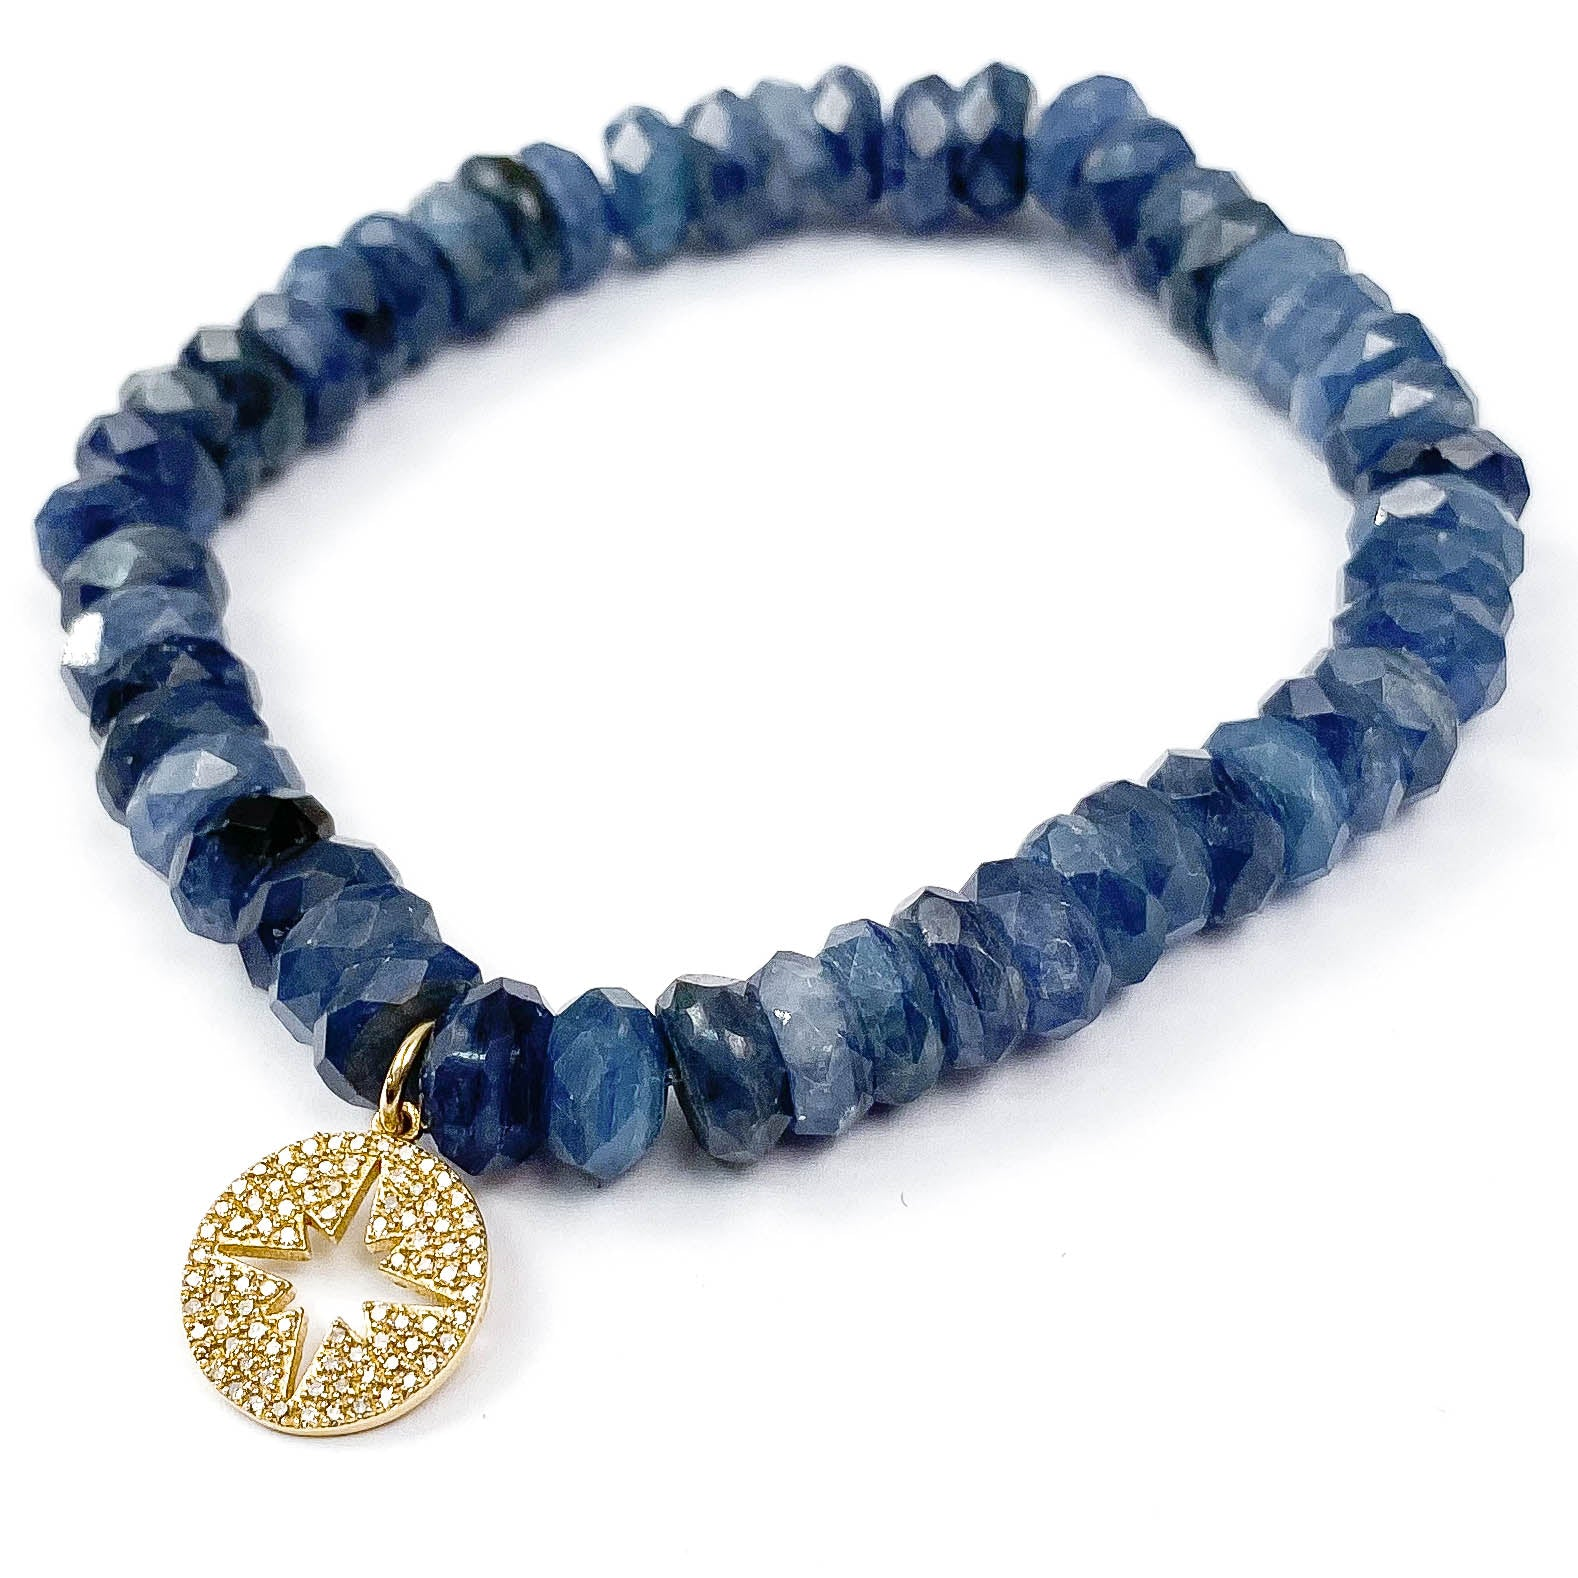 14k Gold Diamond North Star Charm on Kyanite Bracelet